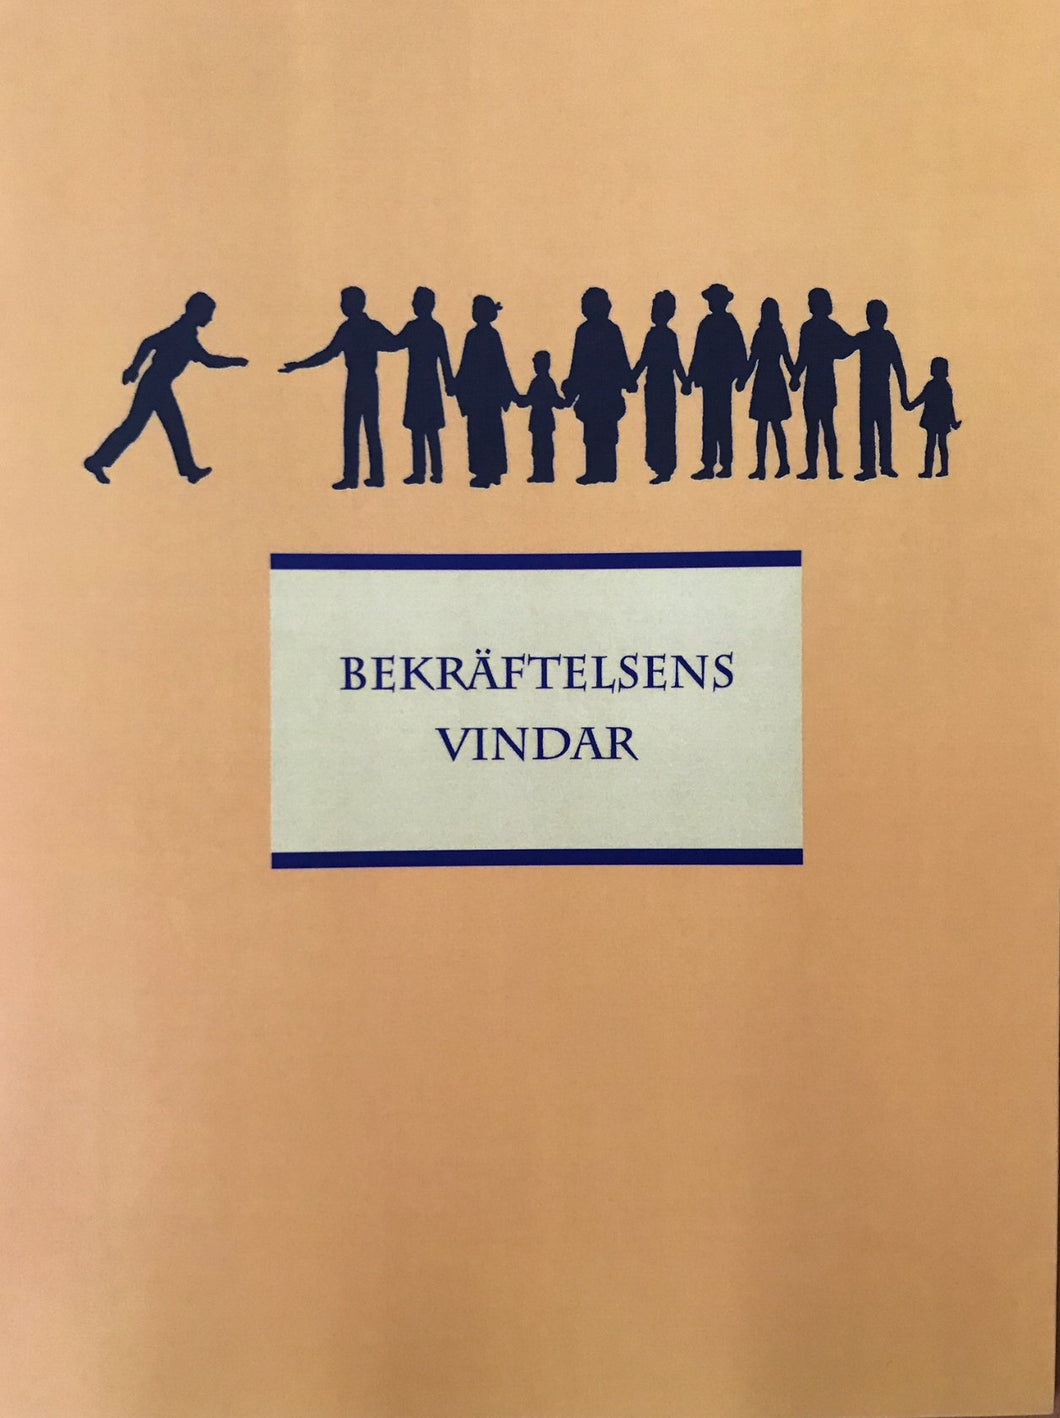 Ruhi-institutets juniorbok - Bekräftelsens vindar